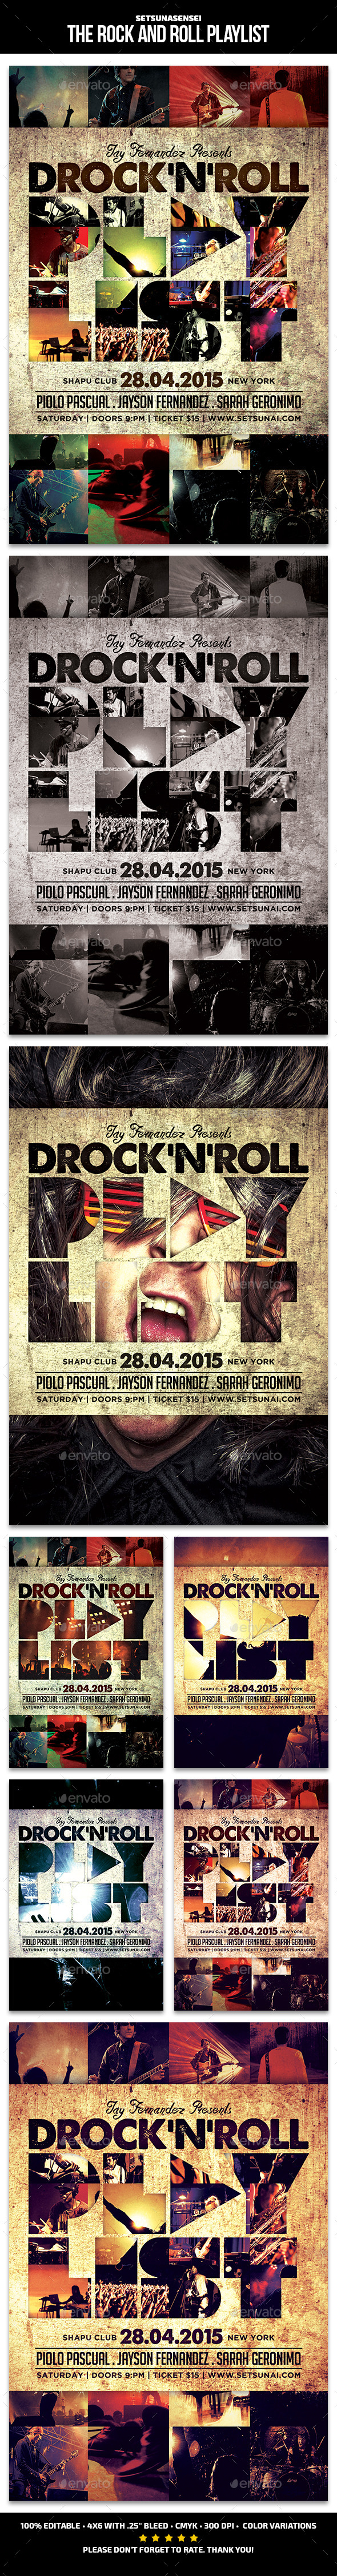 The Rock and Roll Playlist Flyer